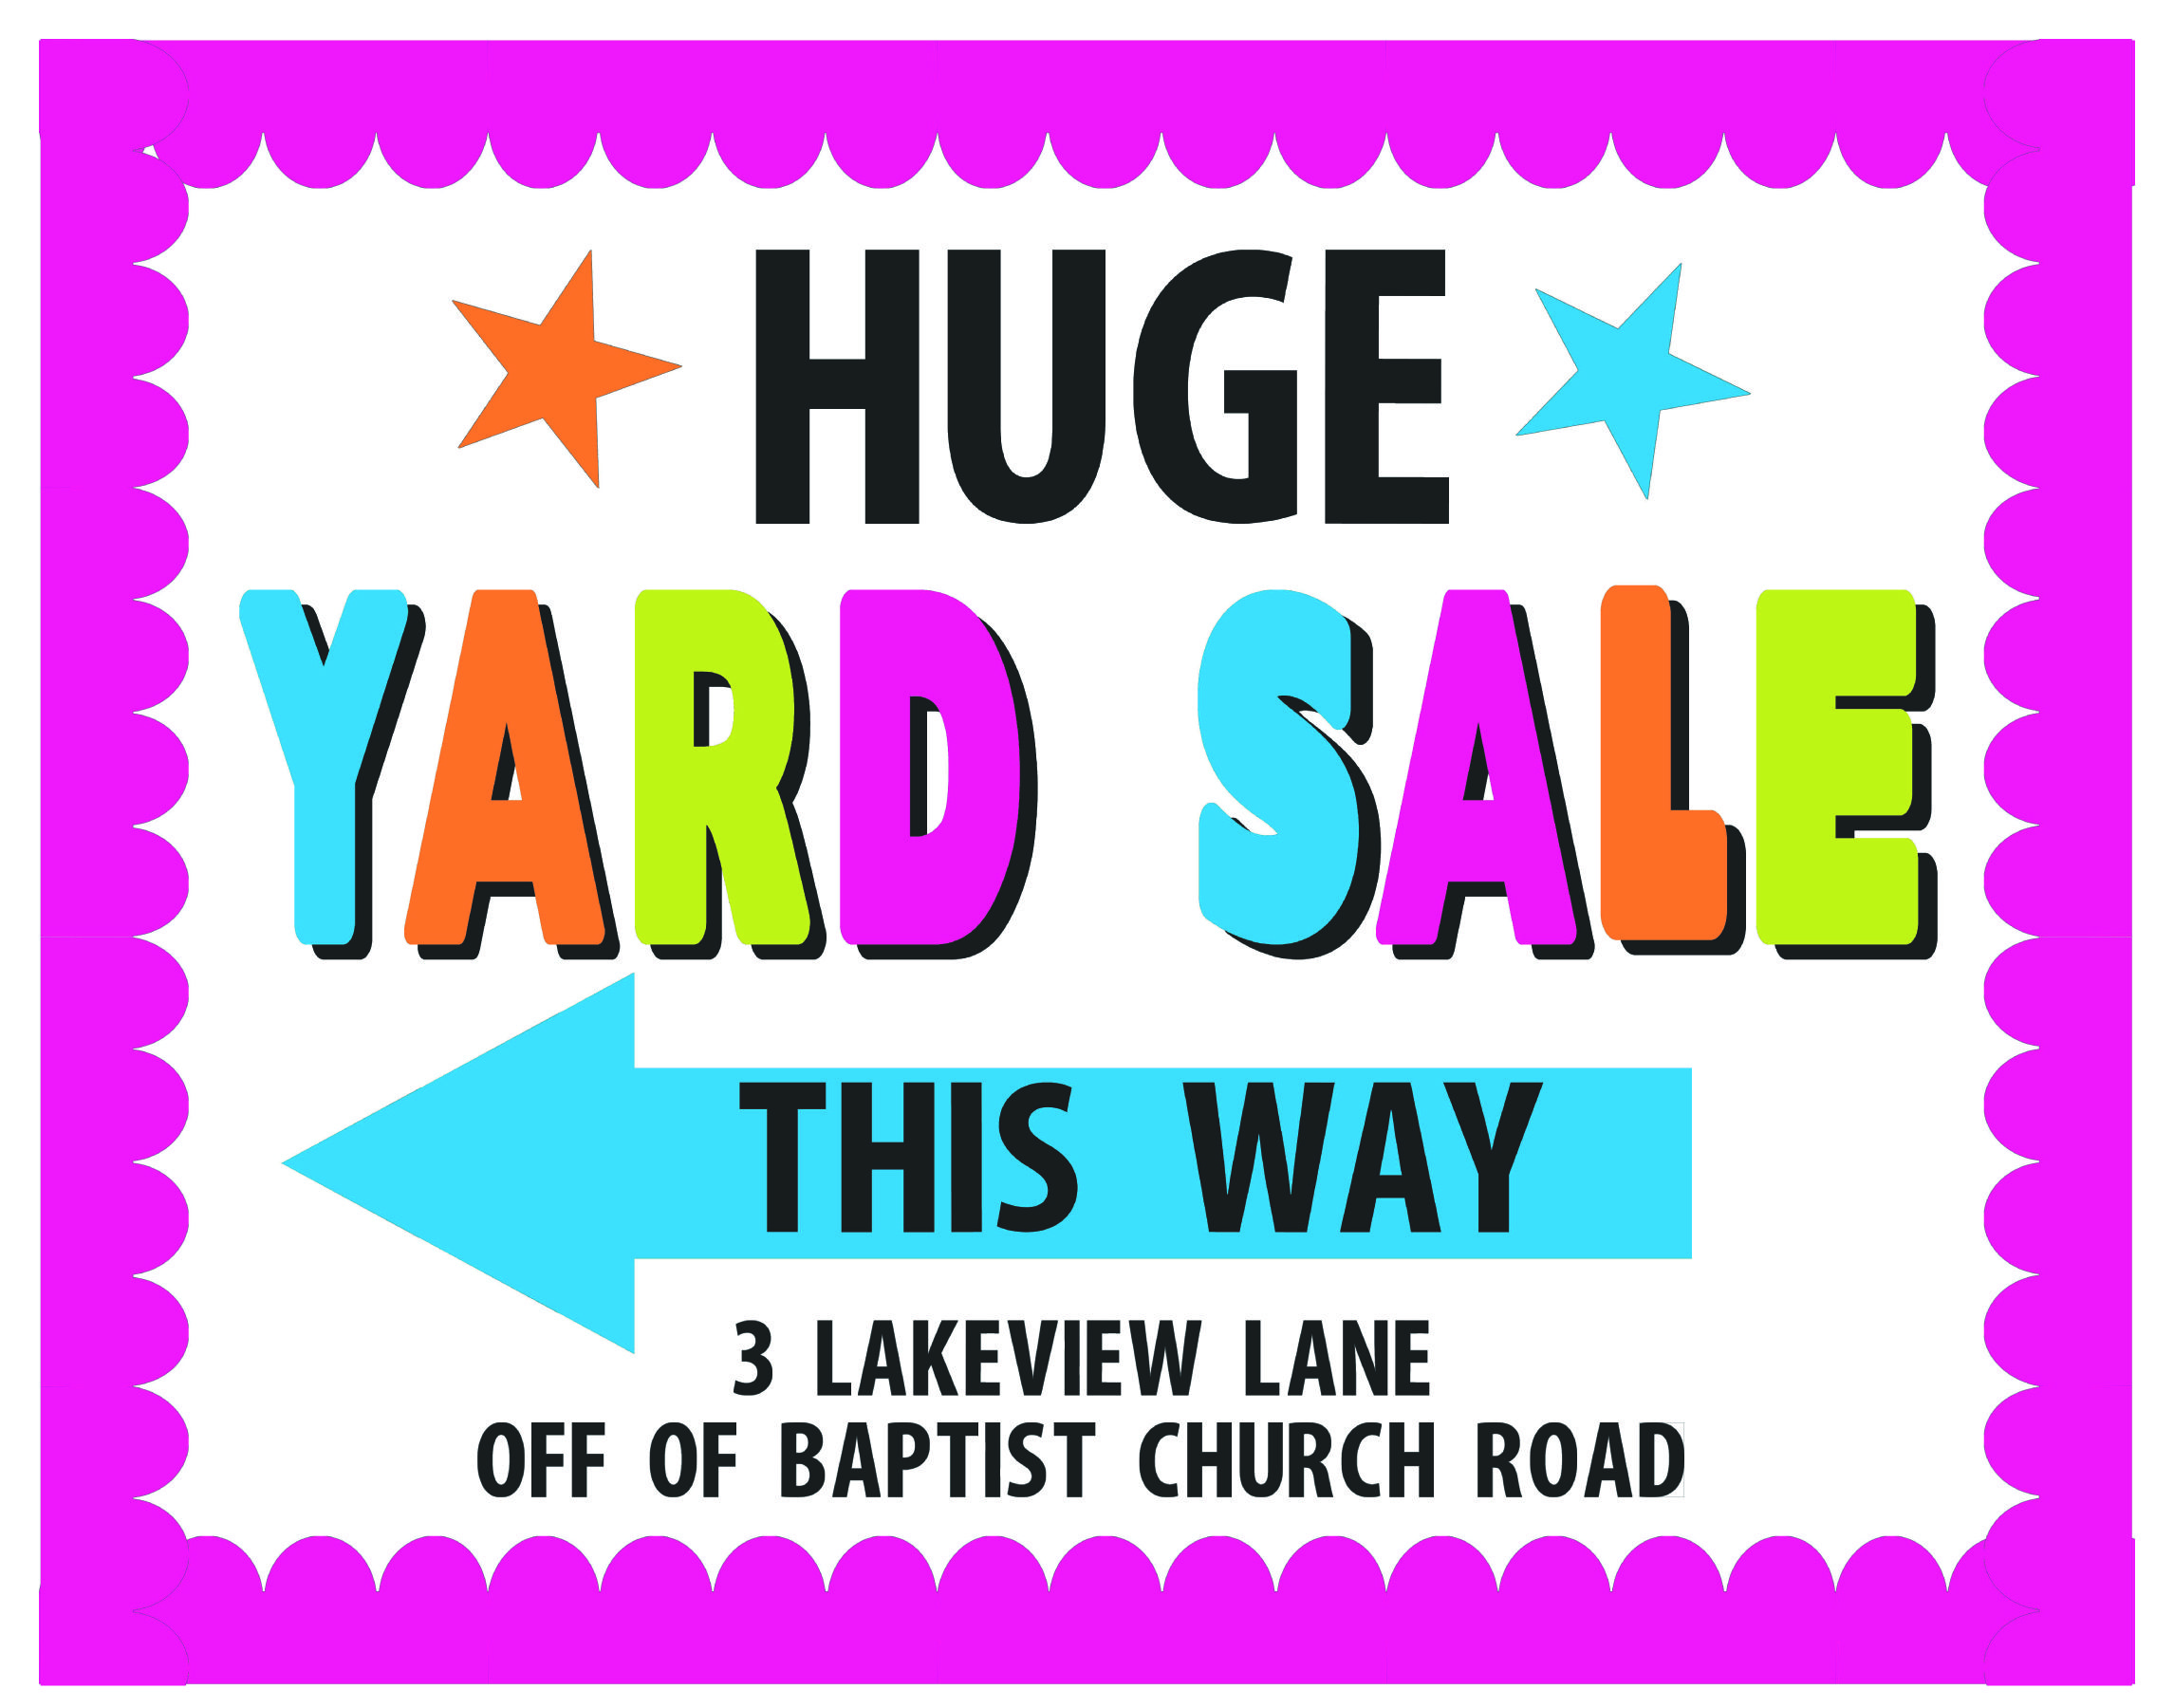 Yard sale poster ideas images for Poster prints for sale